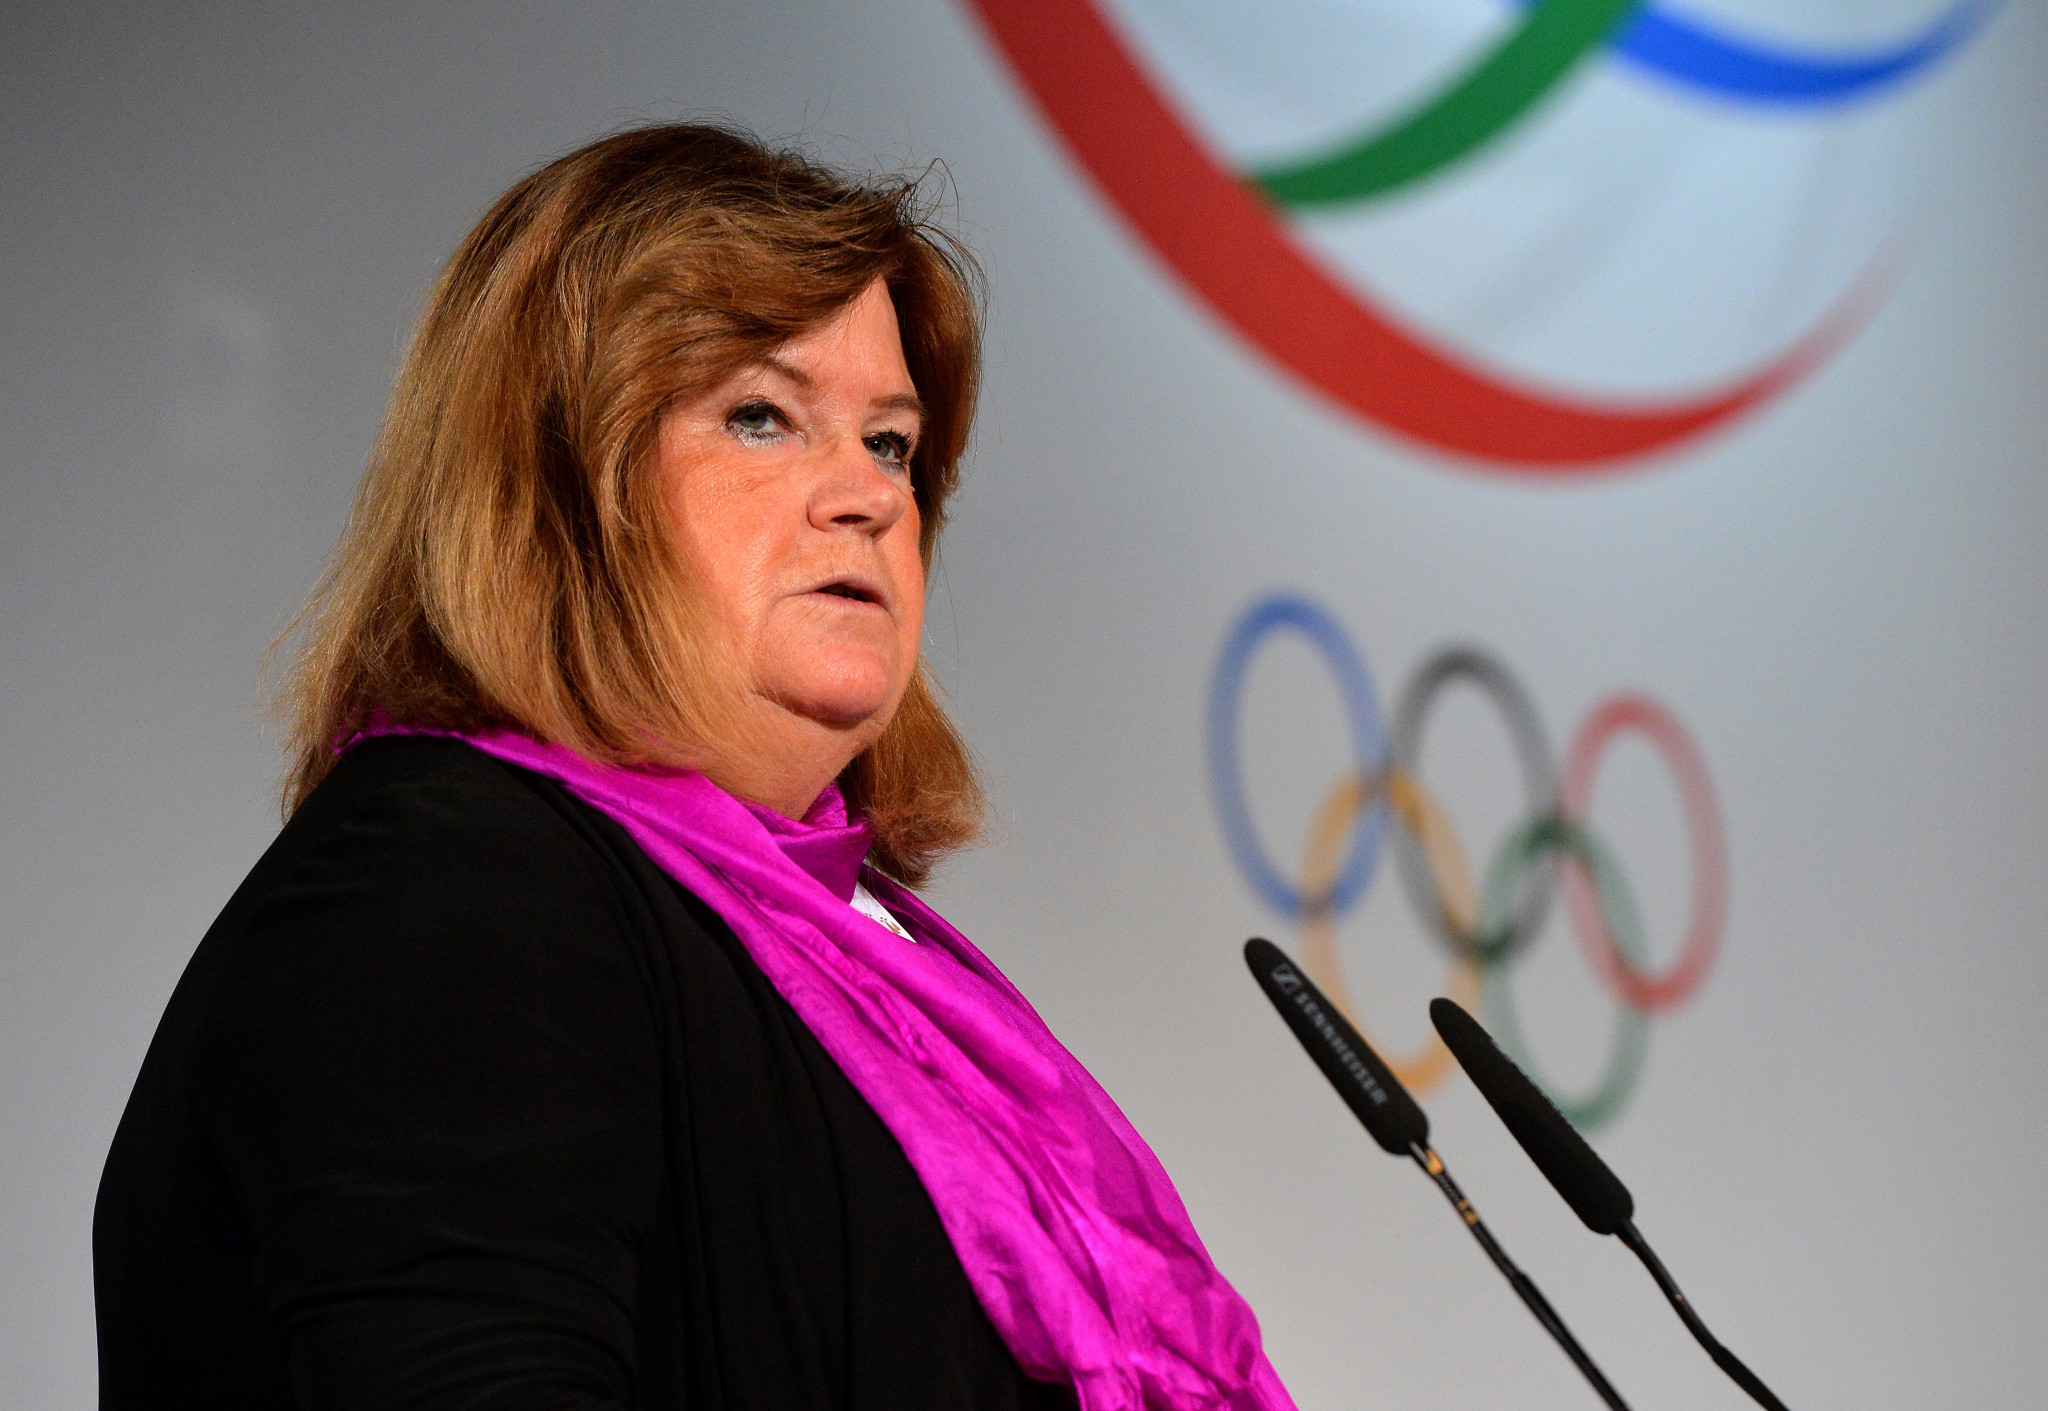 IOC Coordination Commission chair Gunilla Lindberg is due to host the technical visit ©Getty Images